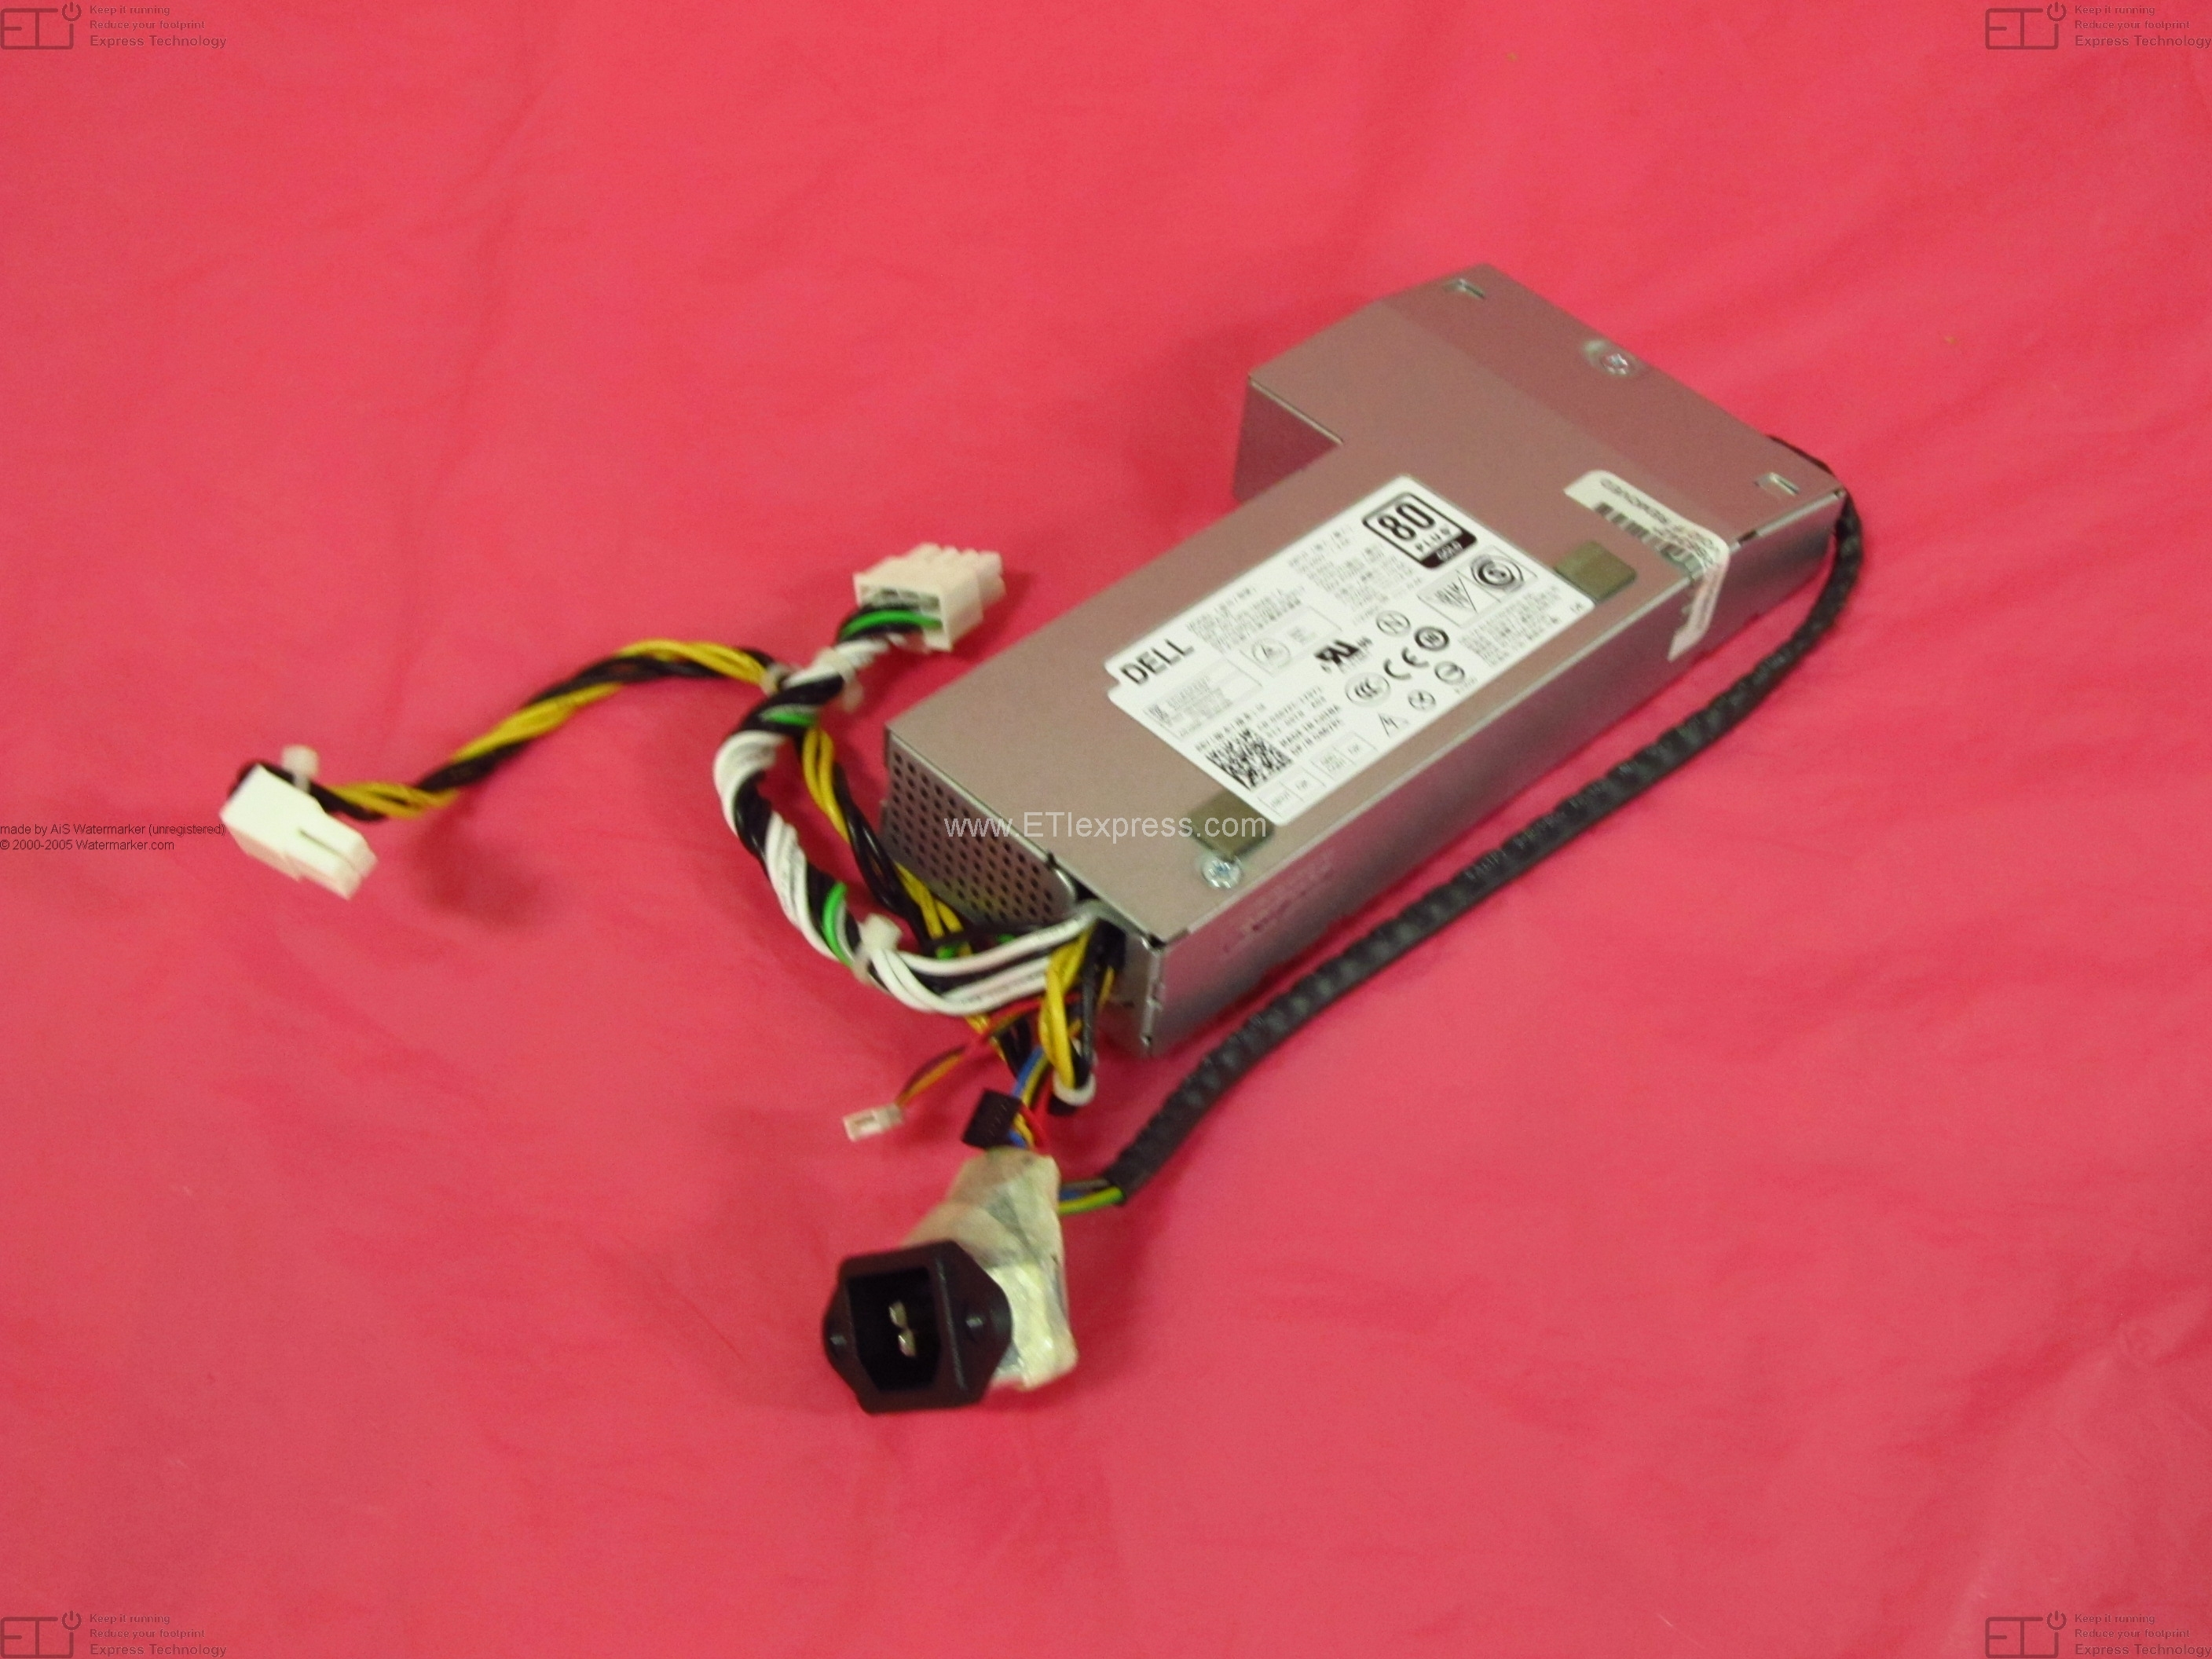 Renewed 271837-014 HP-Compaq 72.8GB 15K RPM 80 Pin 3.5 Inch Hot Swap SCSI